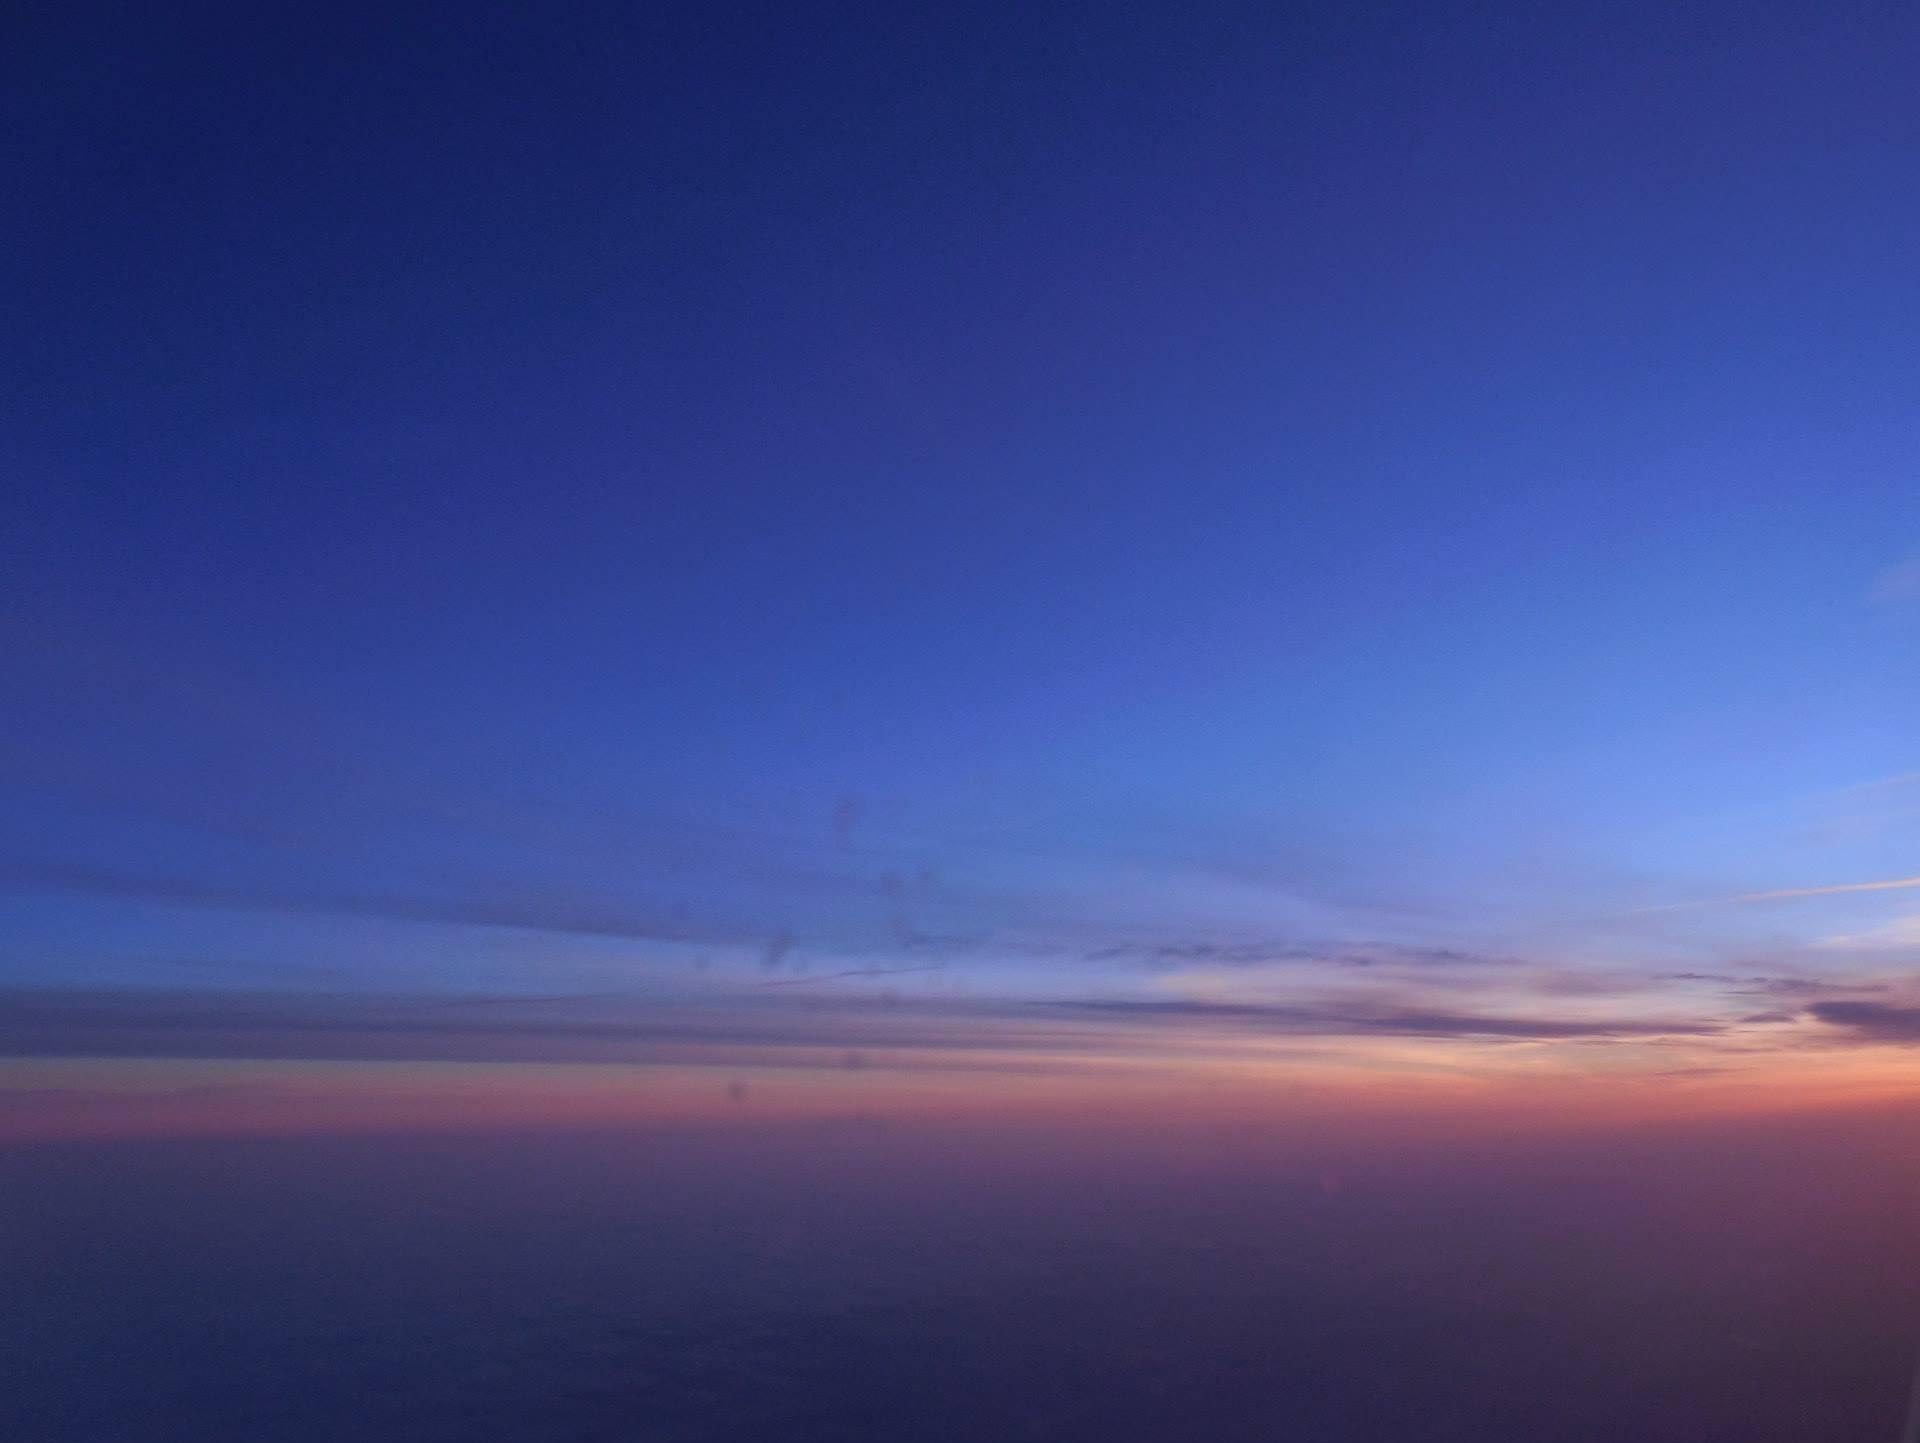 Sun rise over Germany on a plane.